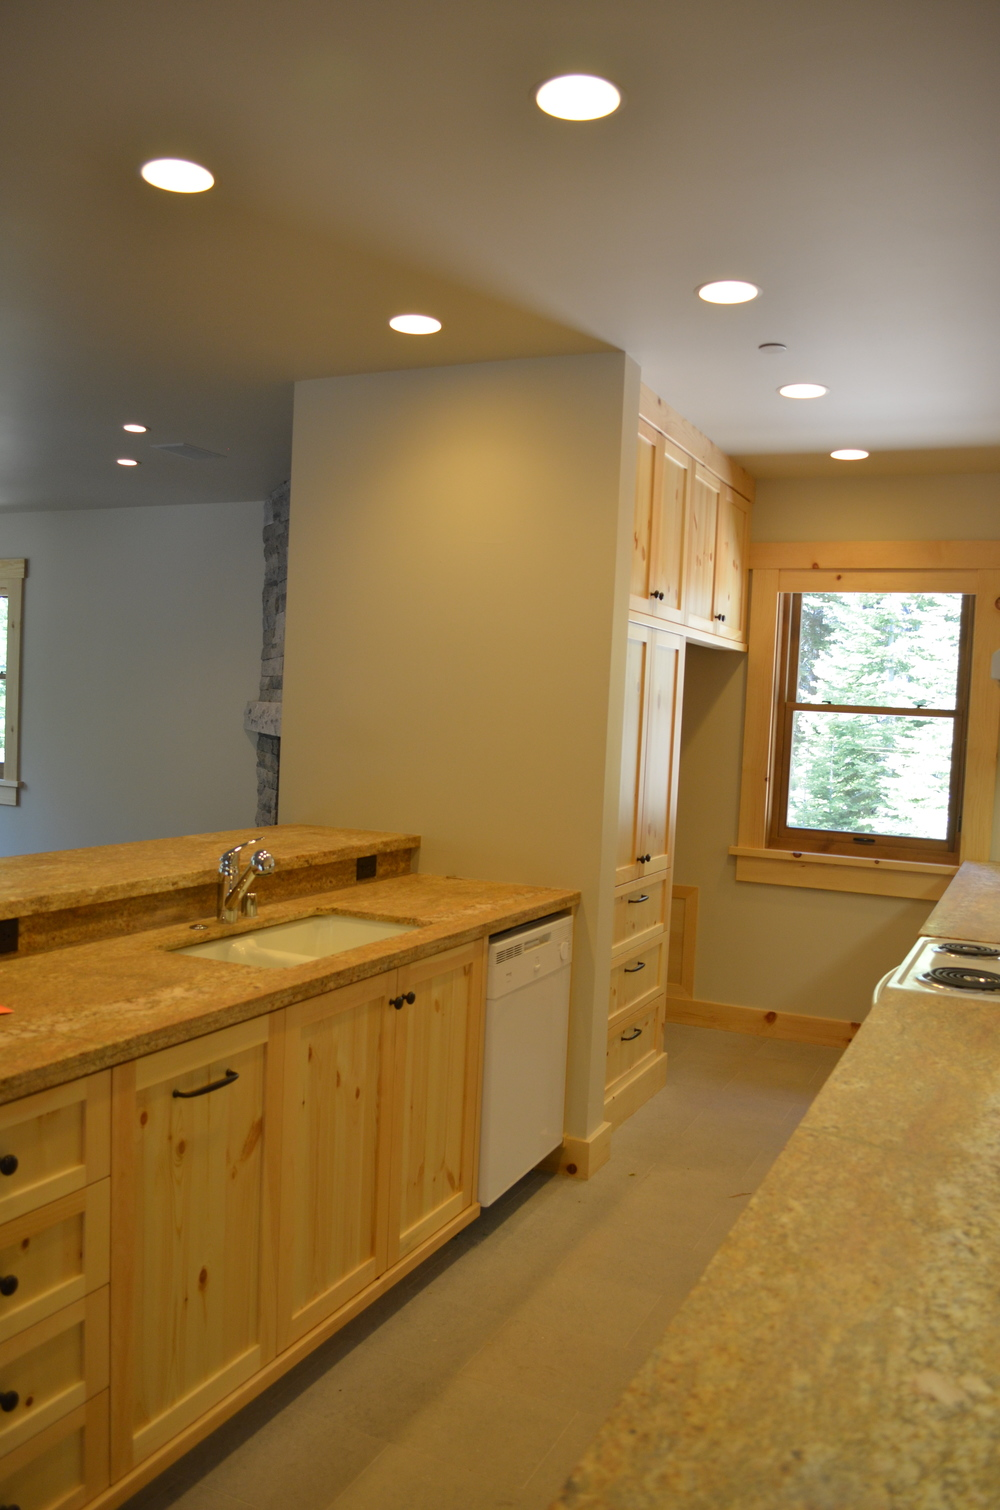 TAHOE KITCHEN 2.JPG